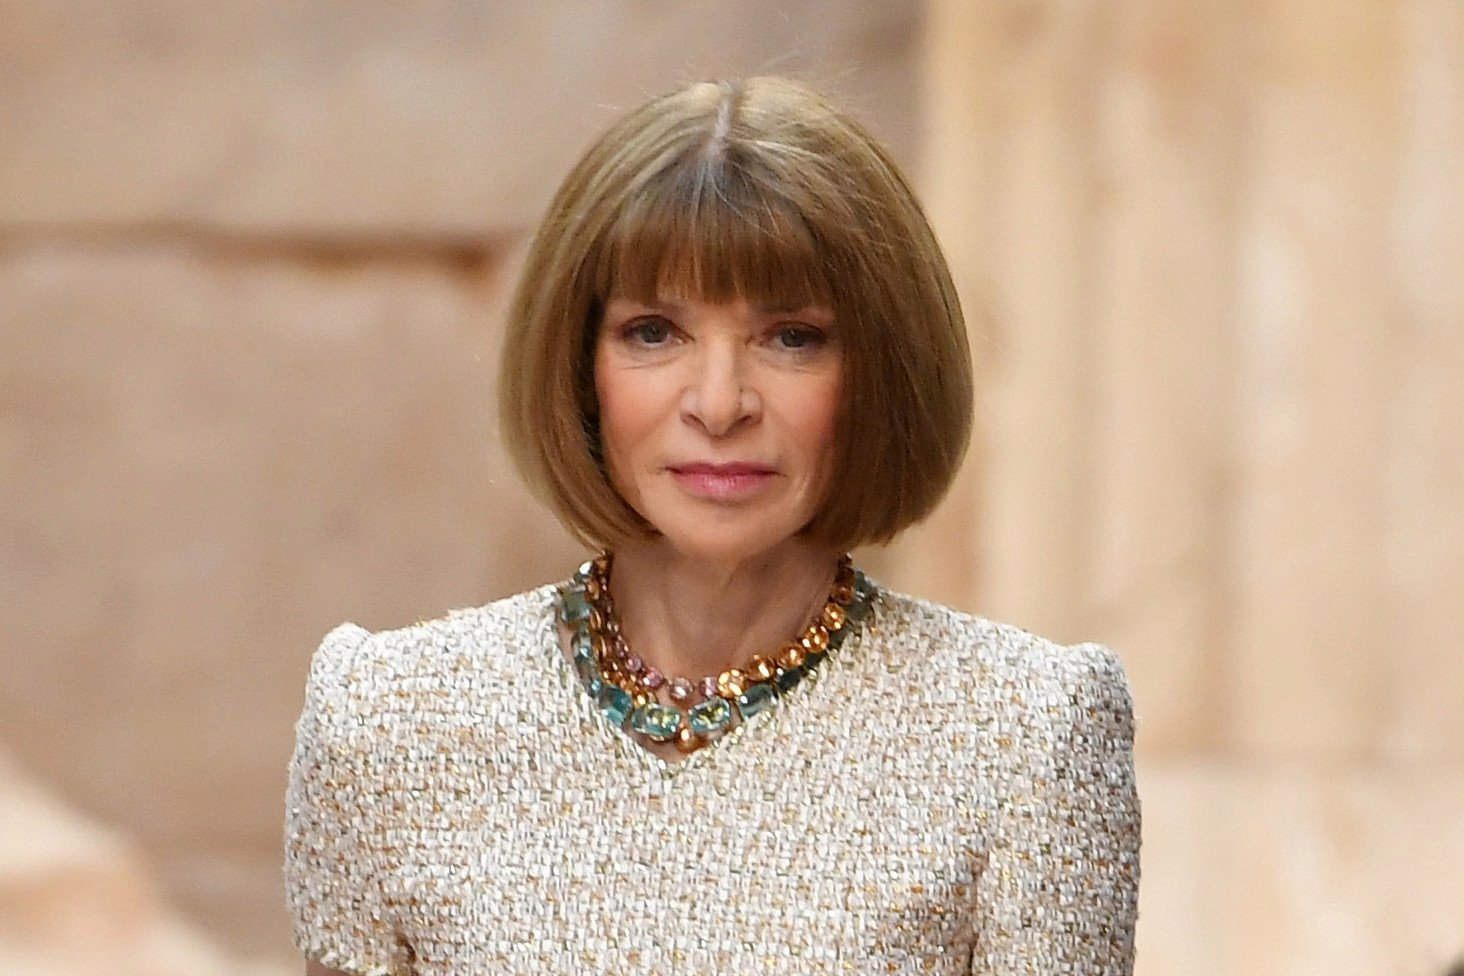 Wintour never considered being ambassador to UK, source says